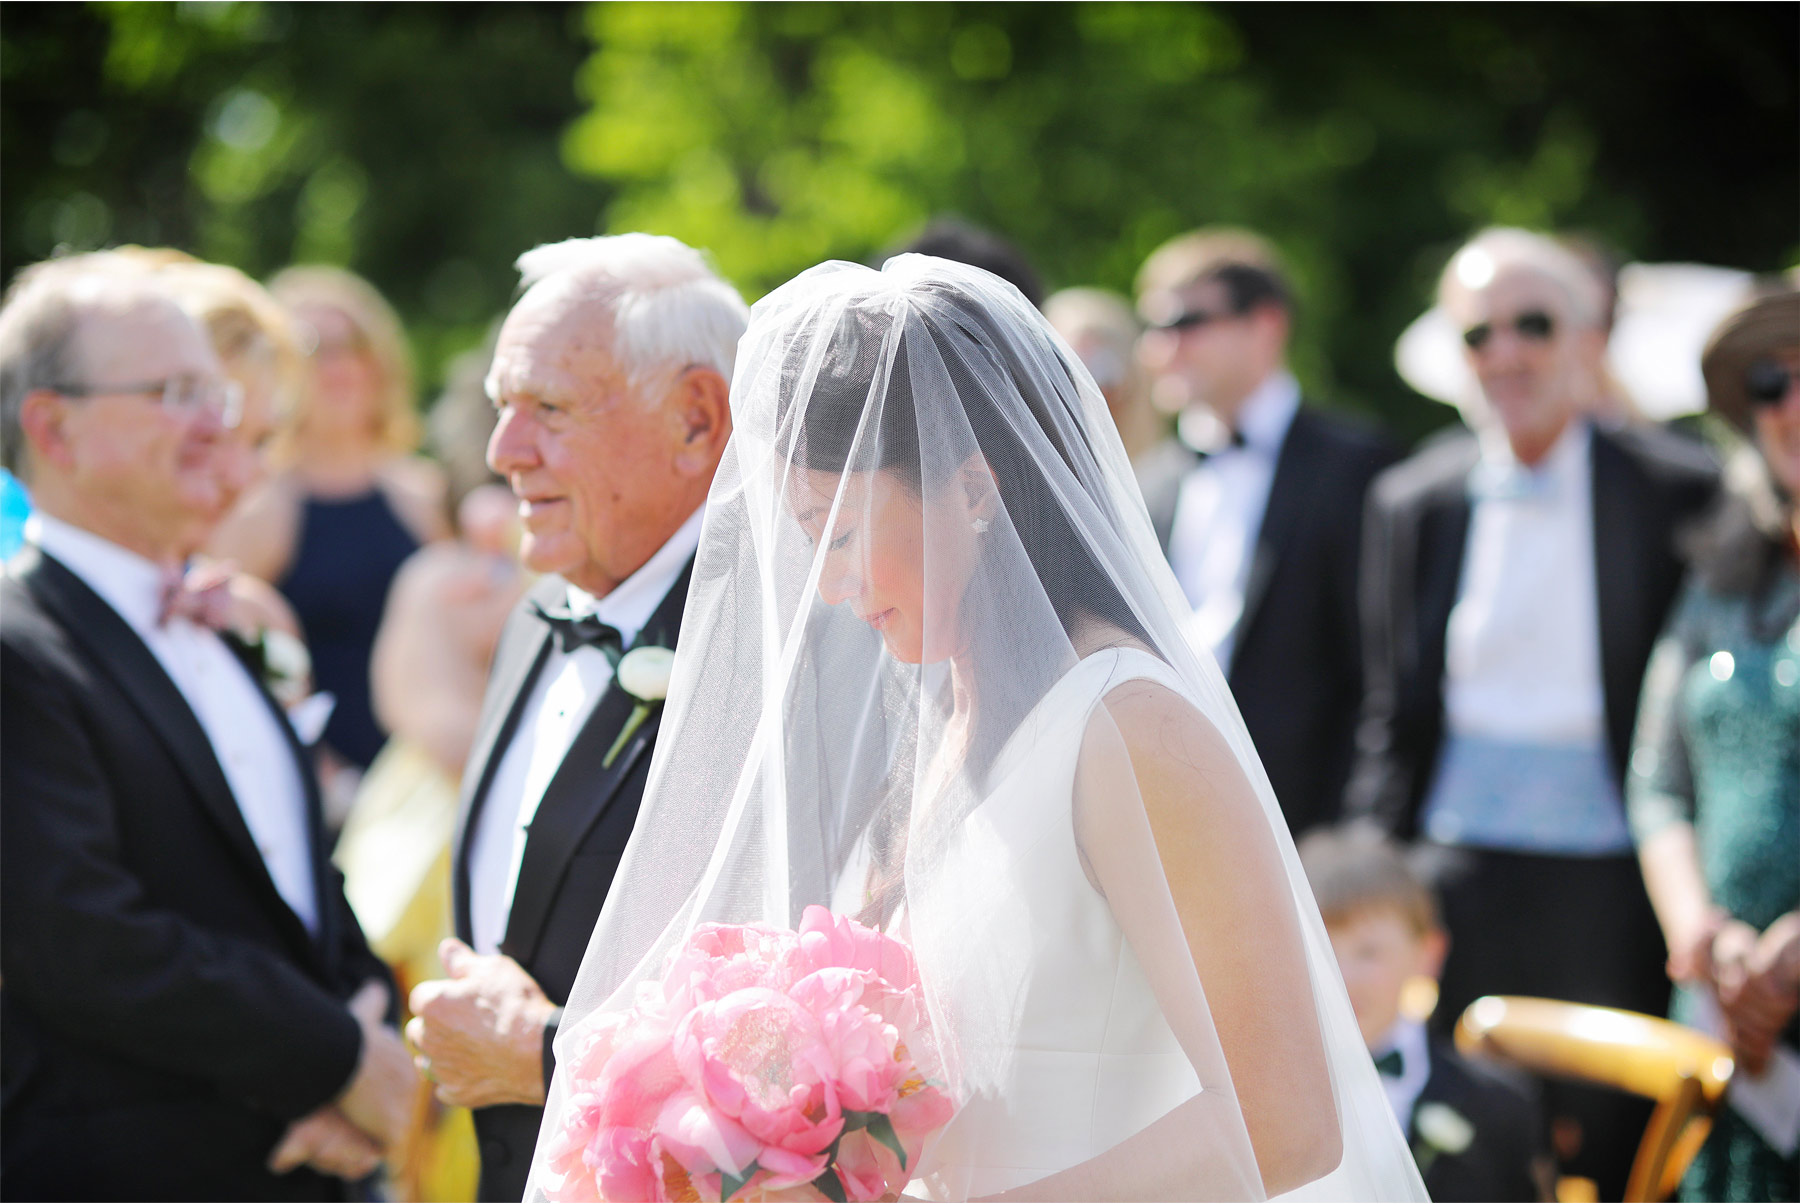 11-Vick-Photography-Wedding-Stouts-Island-Lodge-Wisconsin-Summer-Ceremony-Outdoor-Father-Bride-Veil-MiJa-and-Lucius.jpg